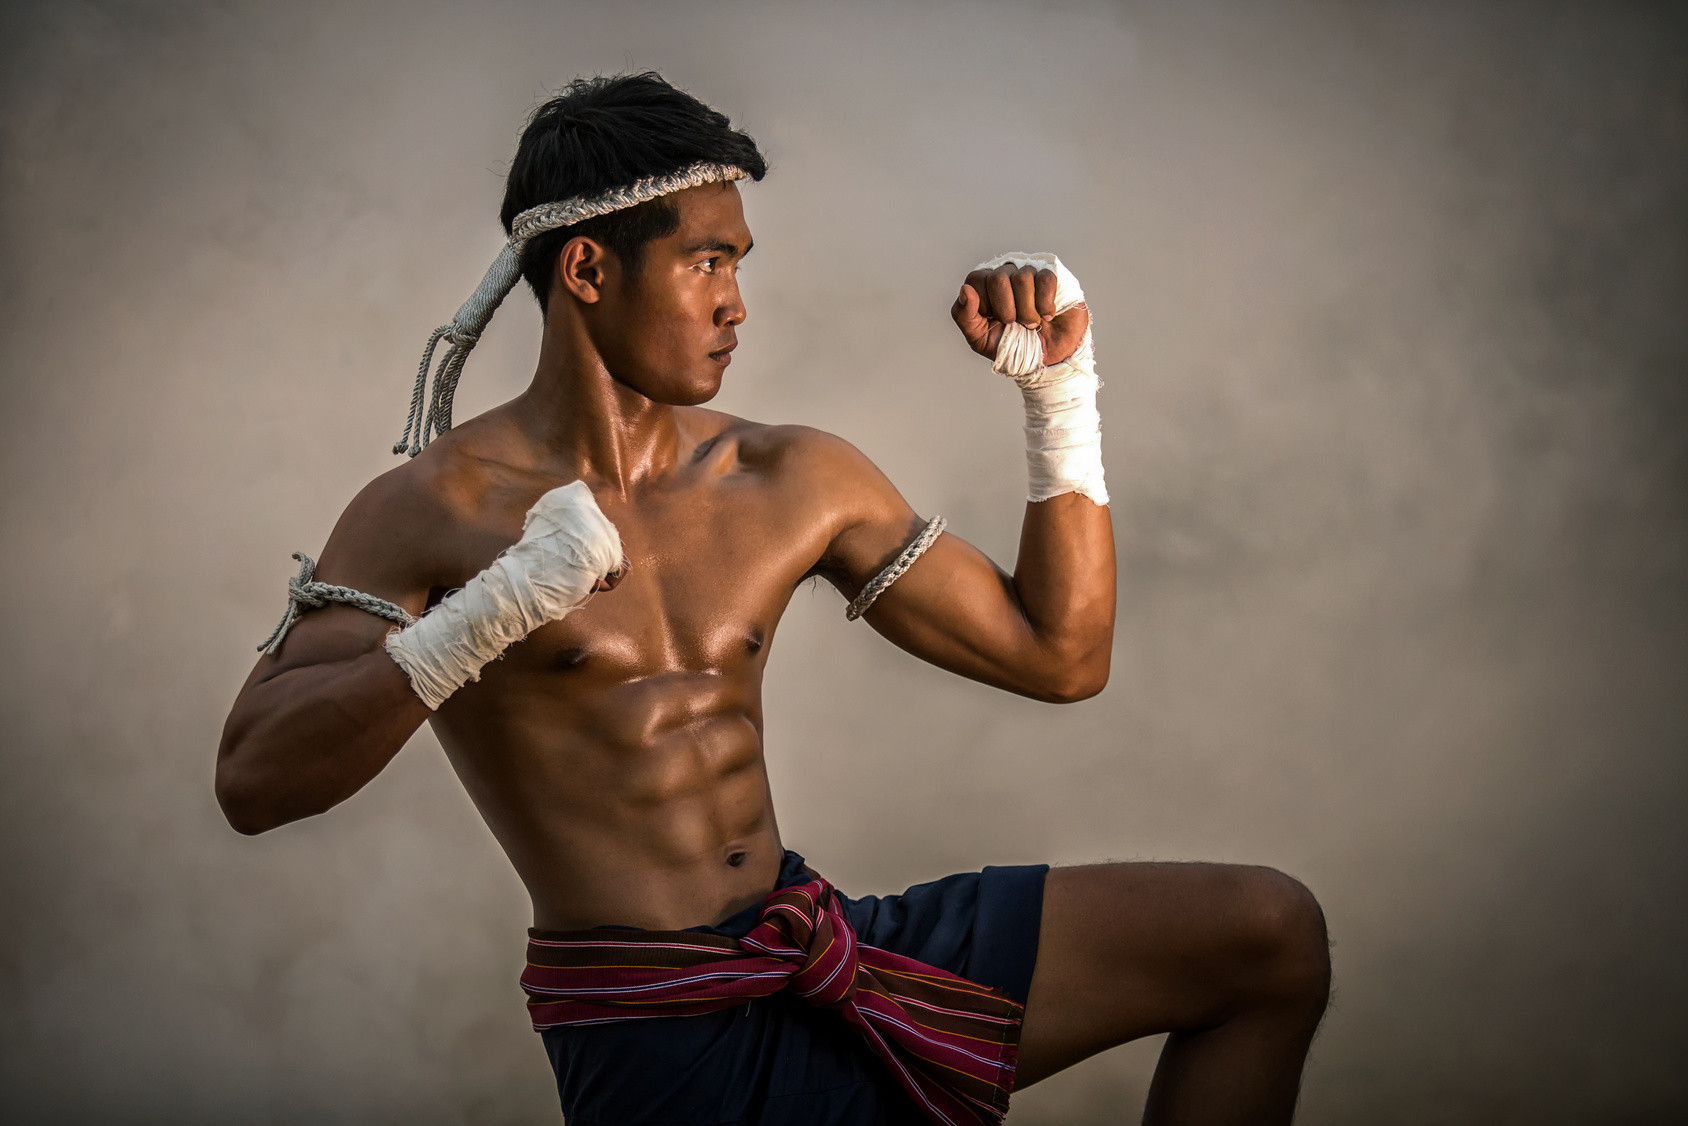 Thai Weight Loss Exercise  How to Lose Weight With Muay Thai Workouts